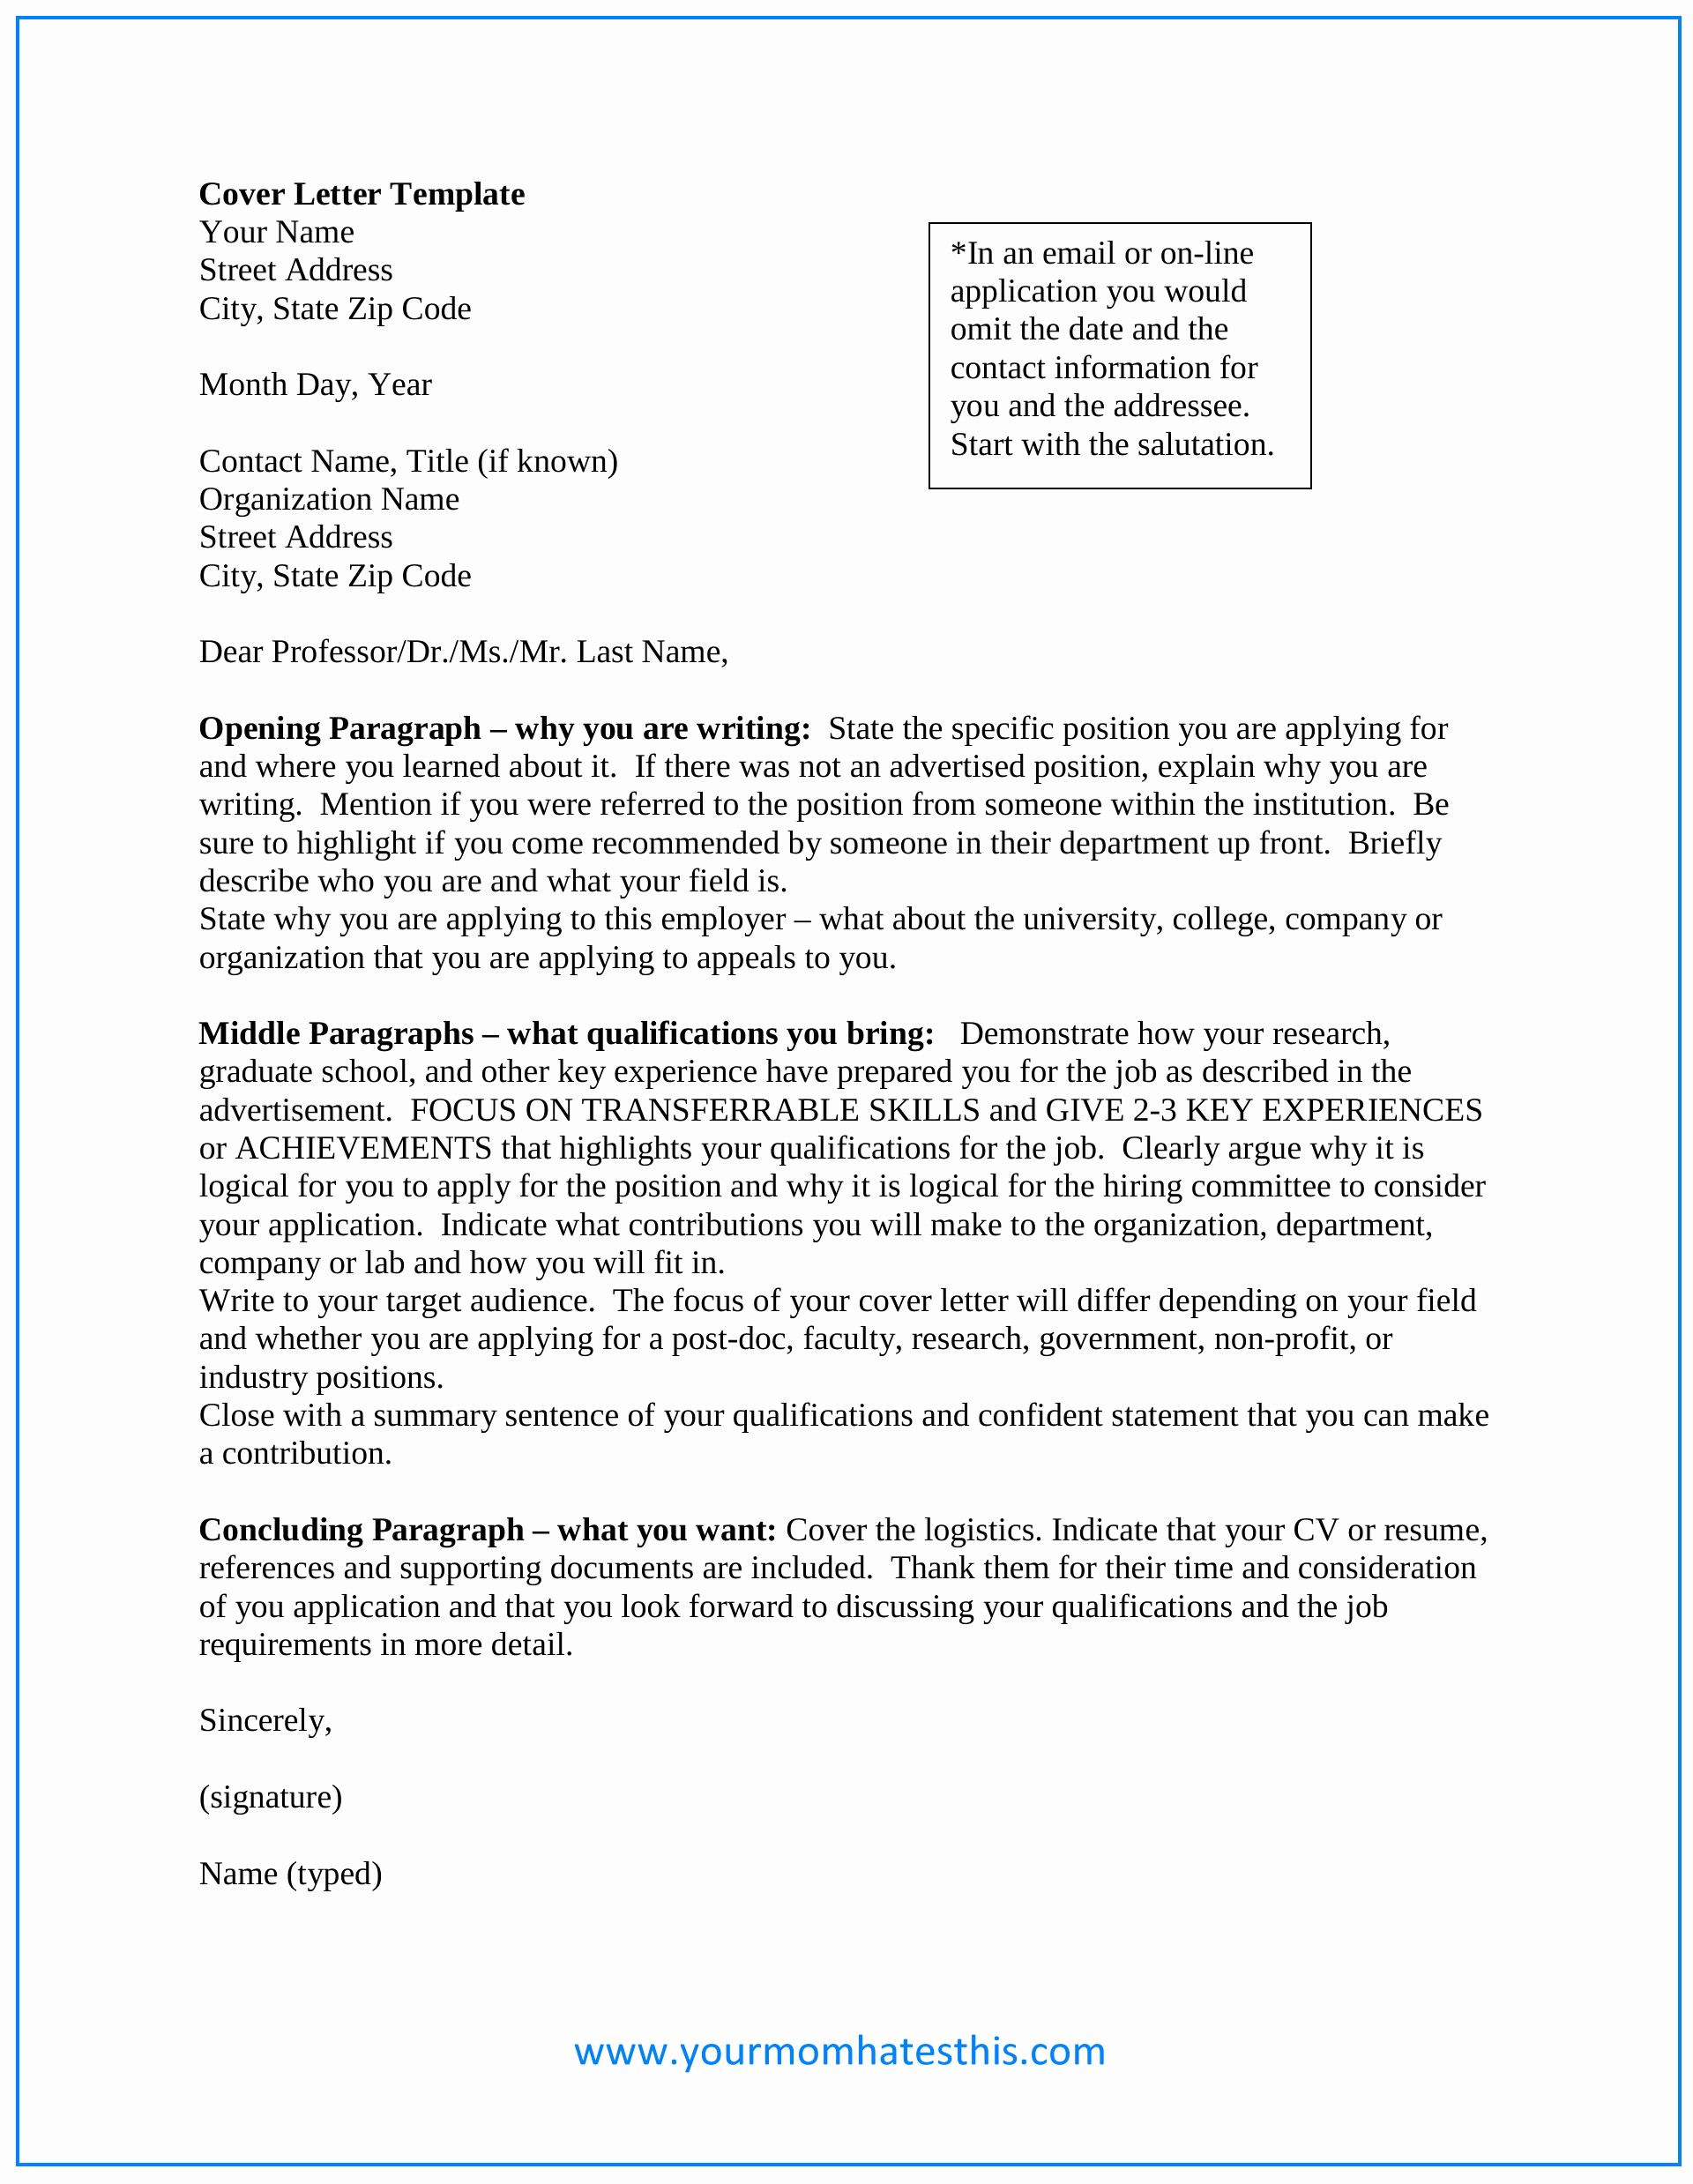 Cover Letter Template Free Download Elegant Download Cover Letter Samples